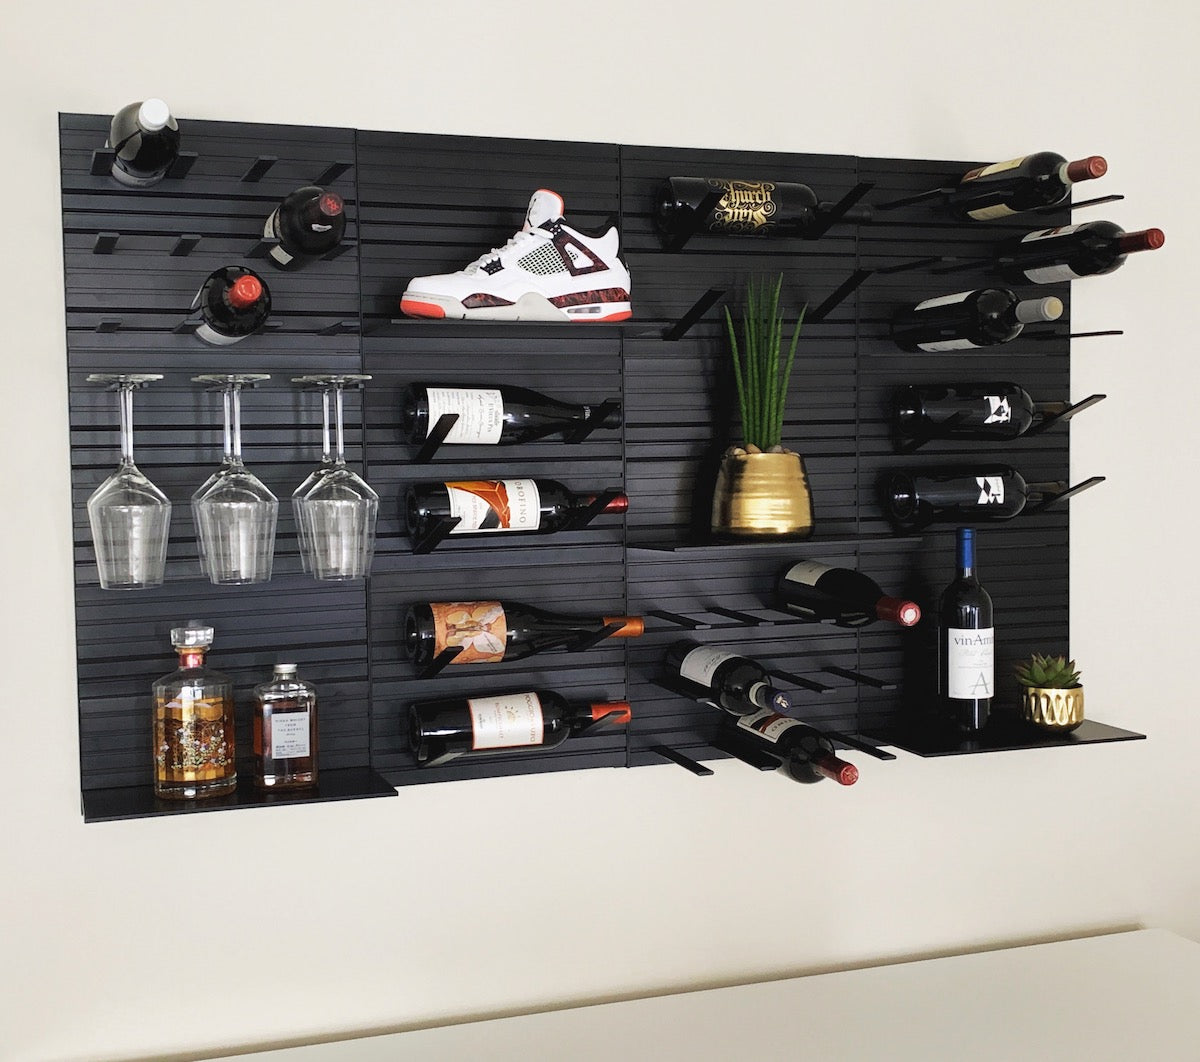 STACT Pro - modular wall storage system